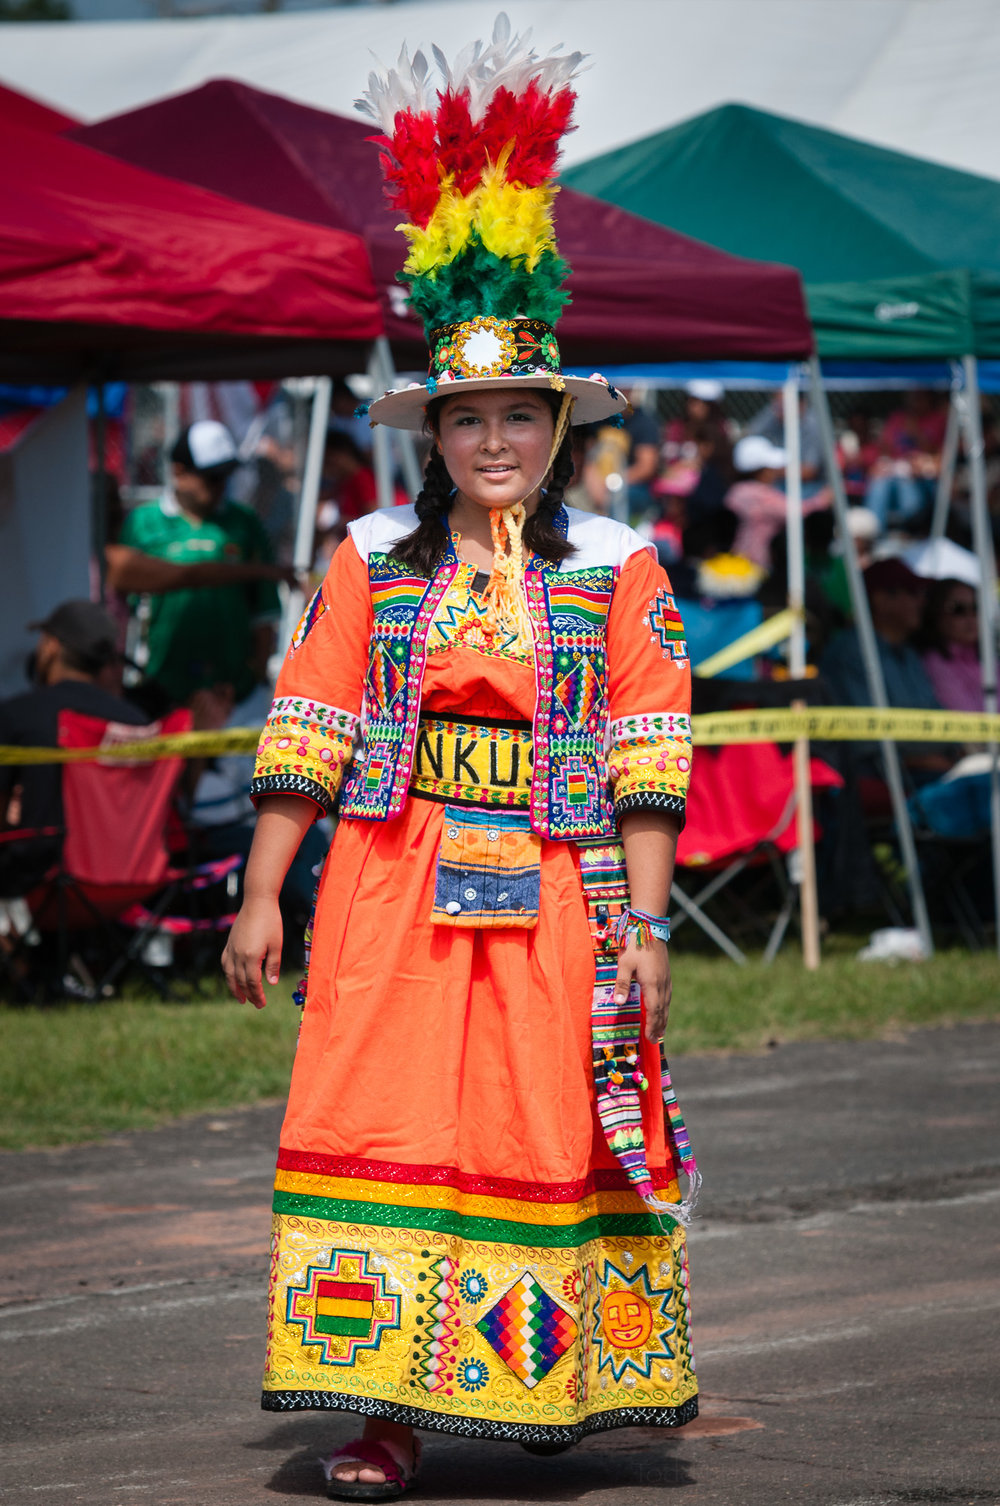 A member of Tinkus Bolivia, who performed a Tinkus dance. She saw me photographing and smiled for the camera.